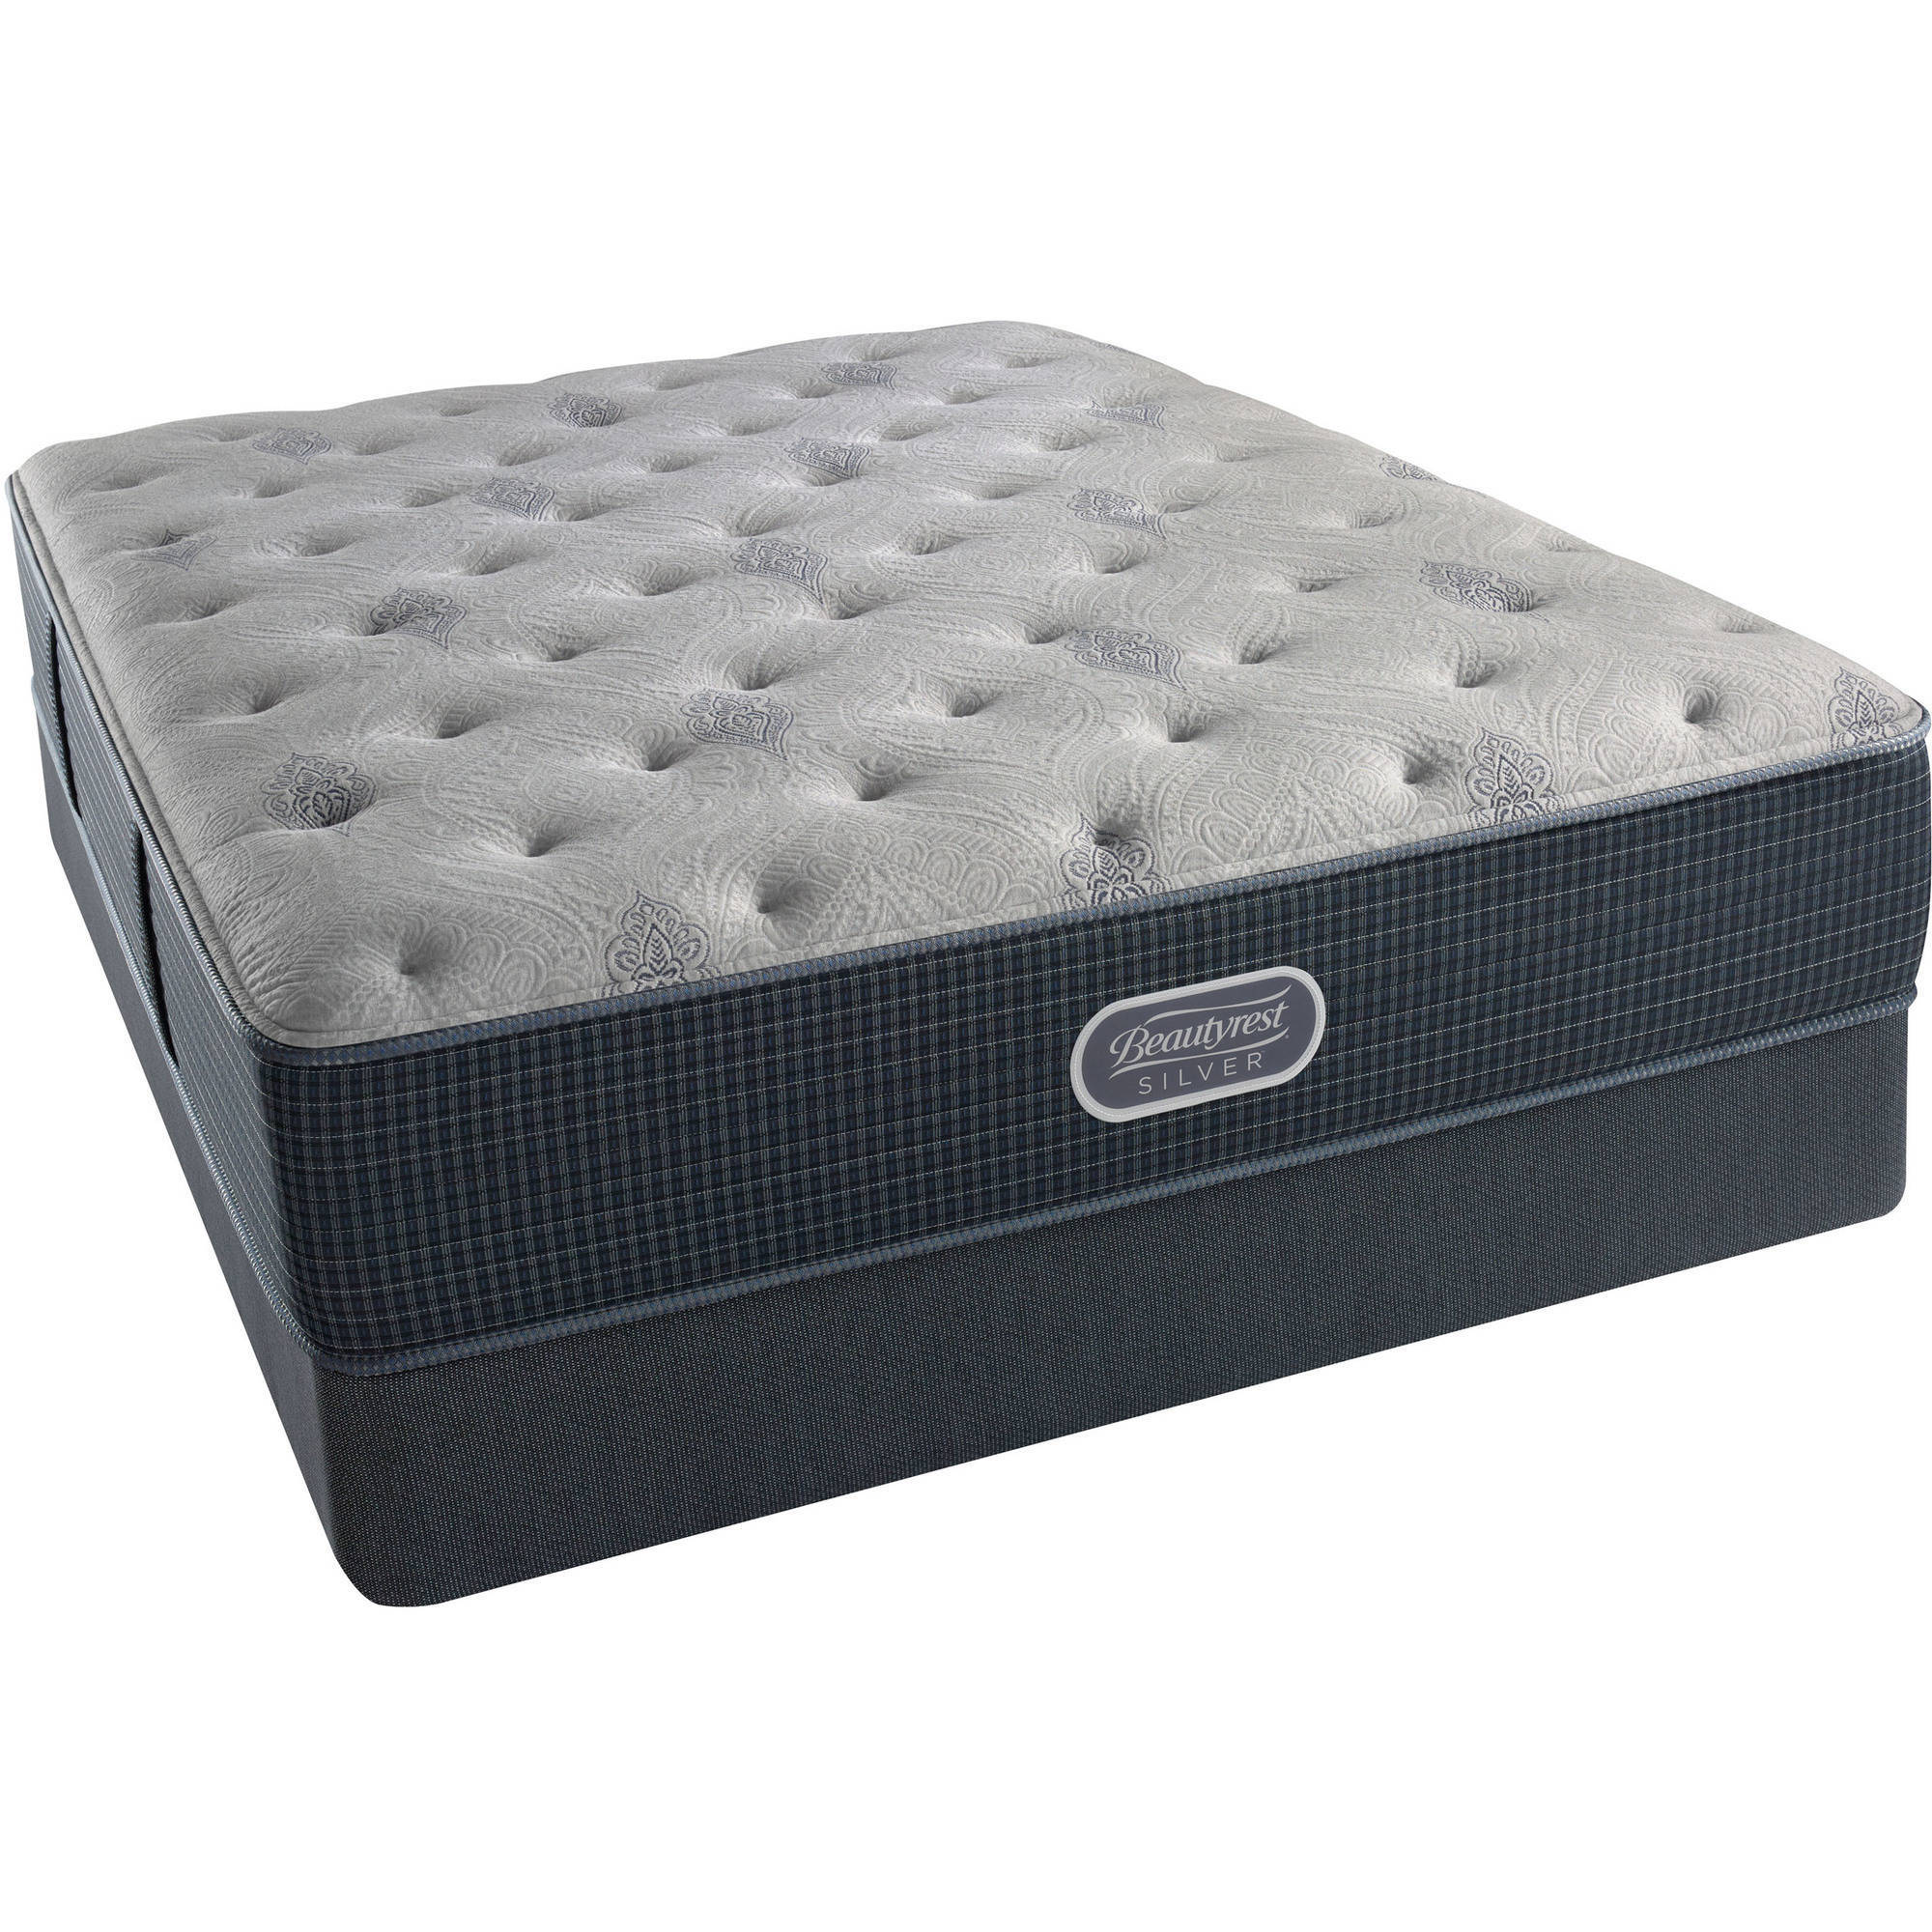 Beautyrest Silver Brewer Plush Mattress Set- In Home White-Glove Delivery Included